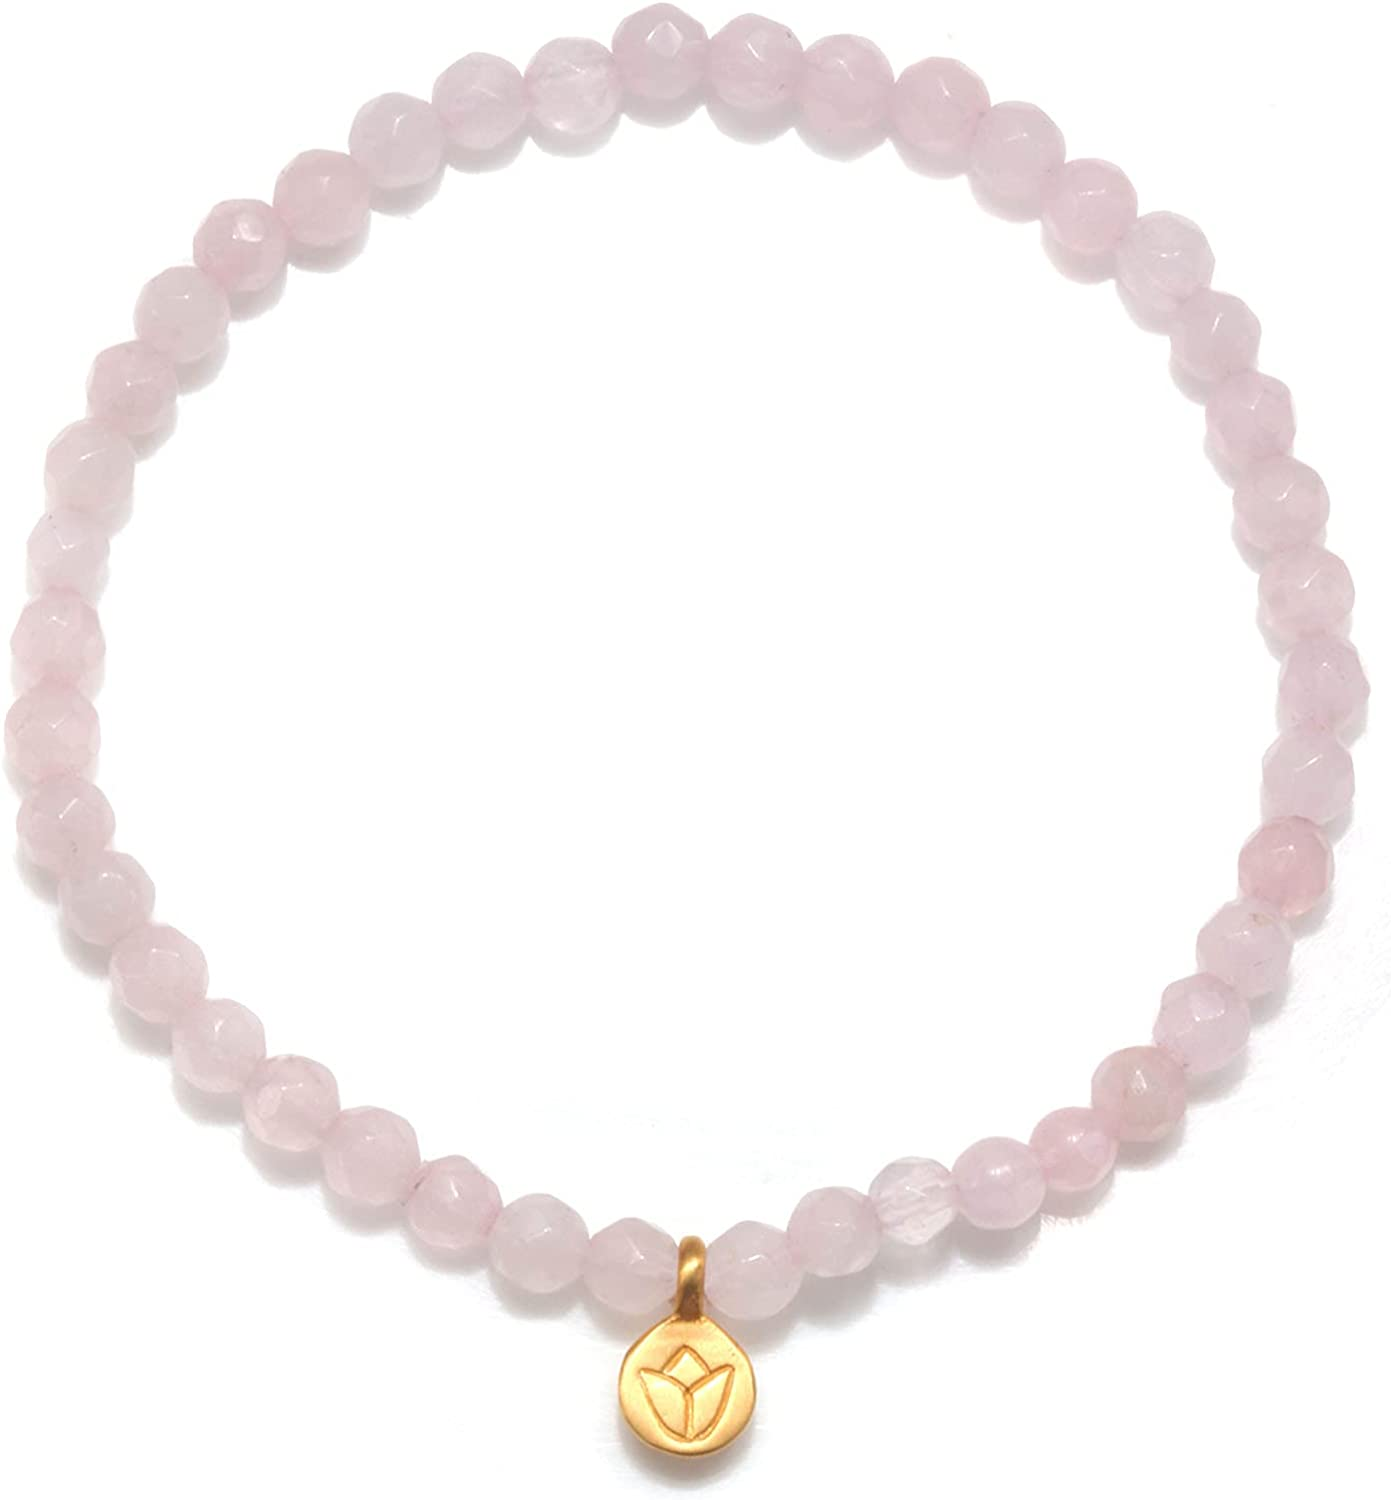 Satya Complete Free Shipping Jewelry 4mm Bracelet Stretch Max 48% OFF